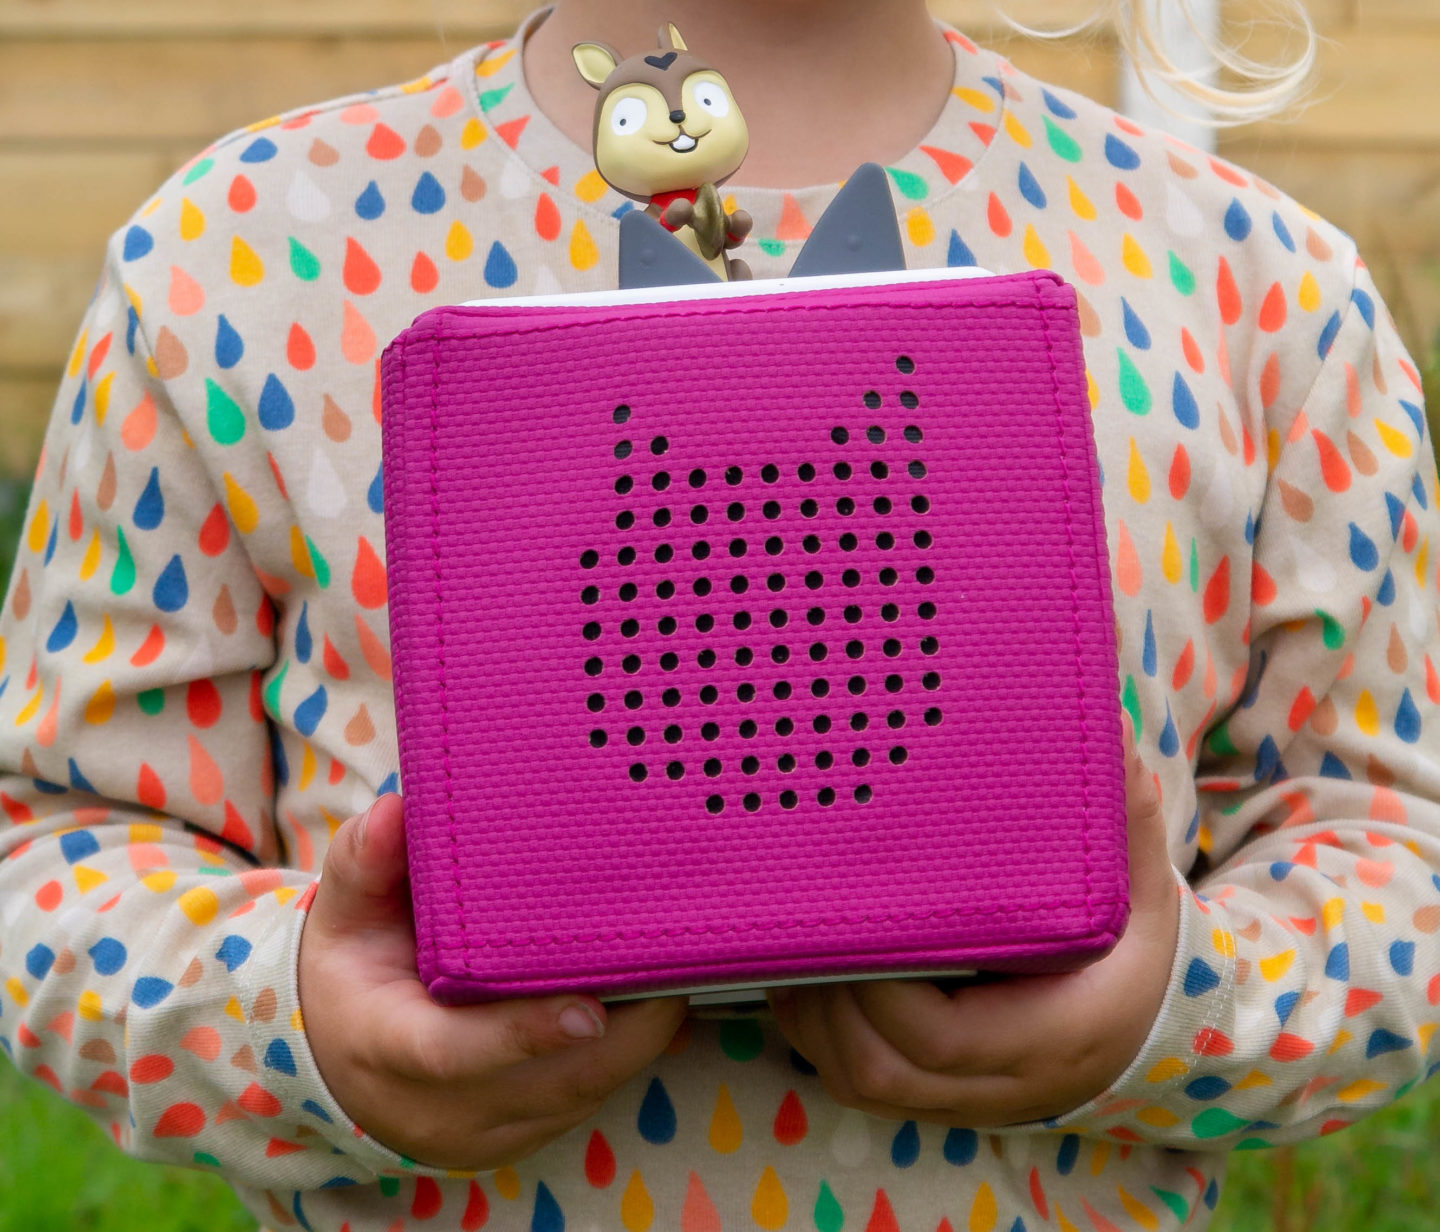 Toniebox Review: Everything you need to know about the innovative audio player for children!